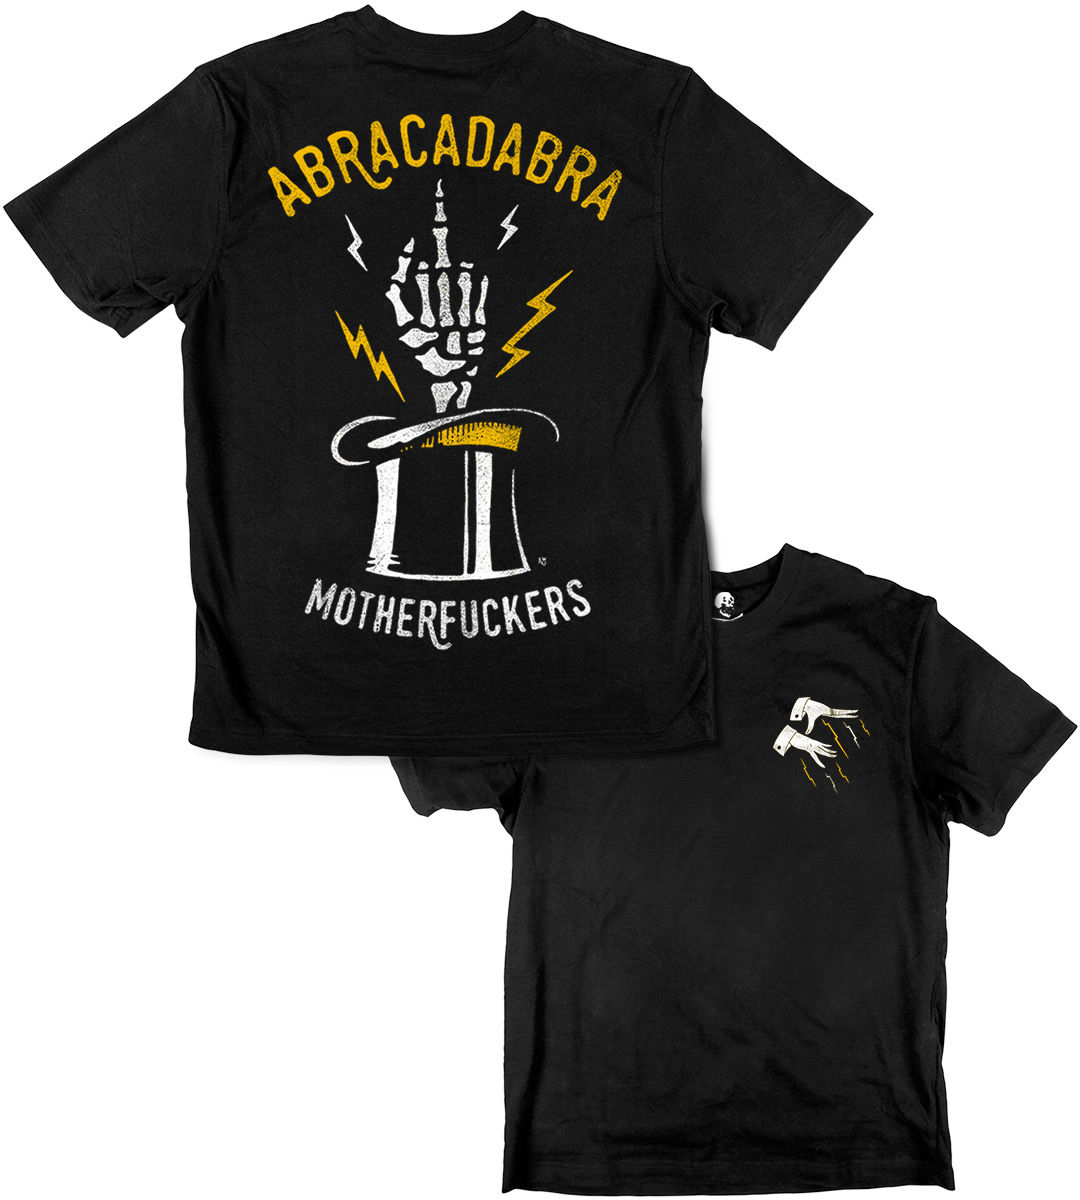 ABRACADABRA - product images  of